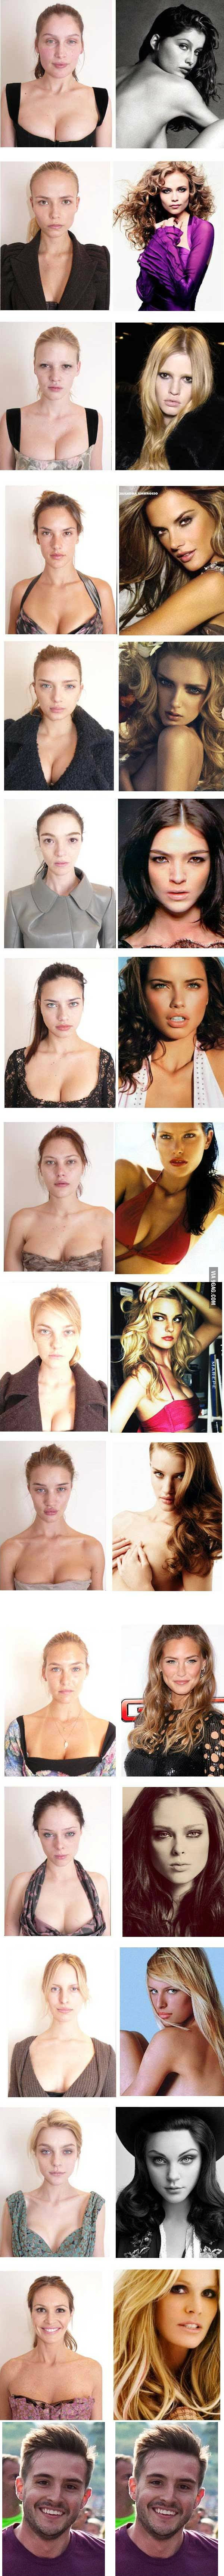 Some hot models without make up